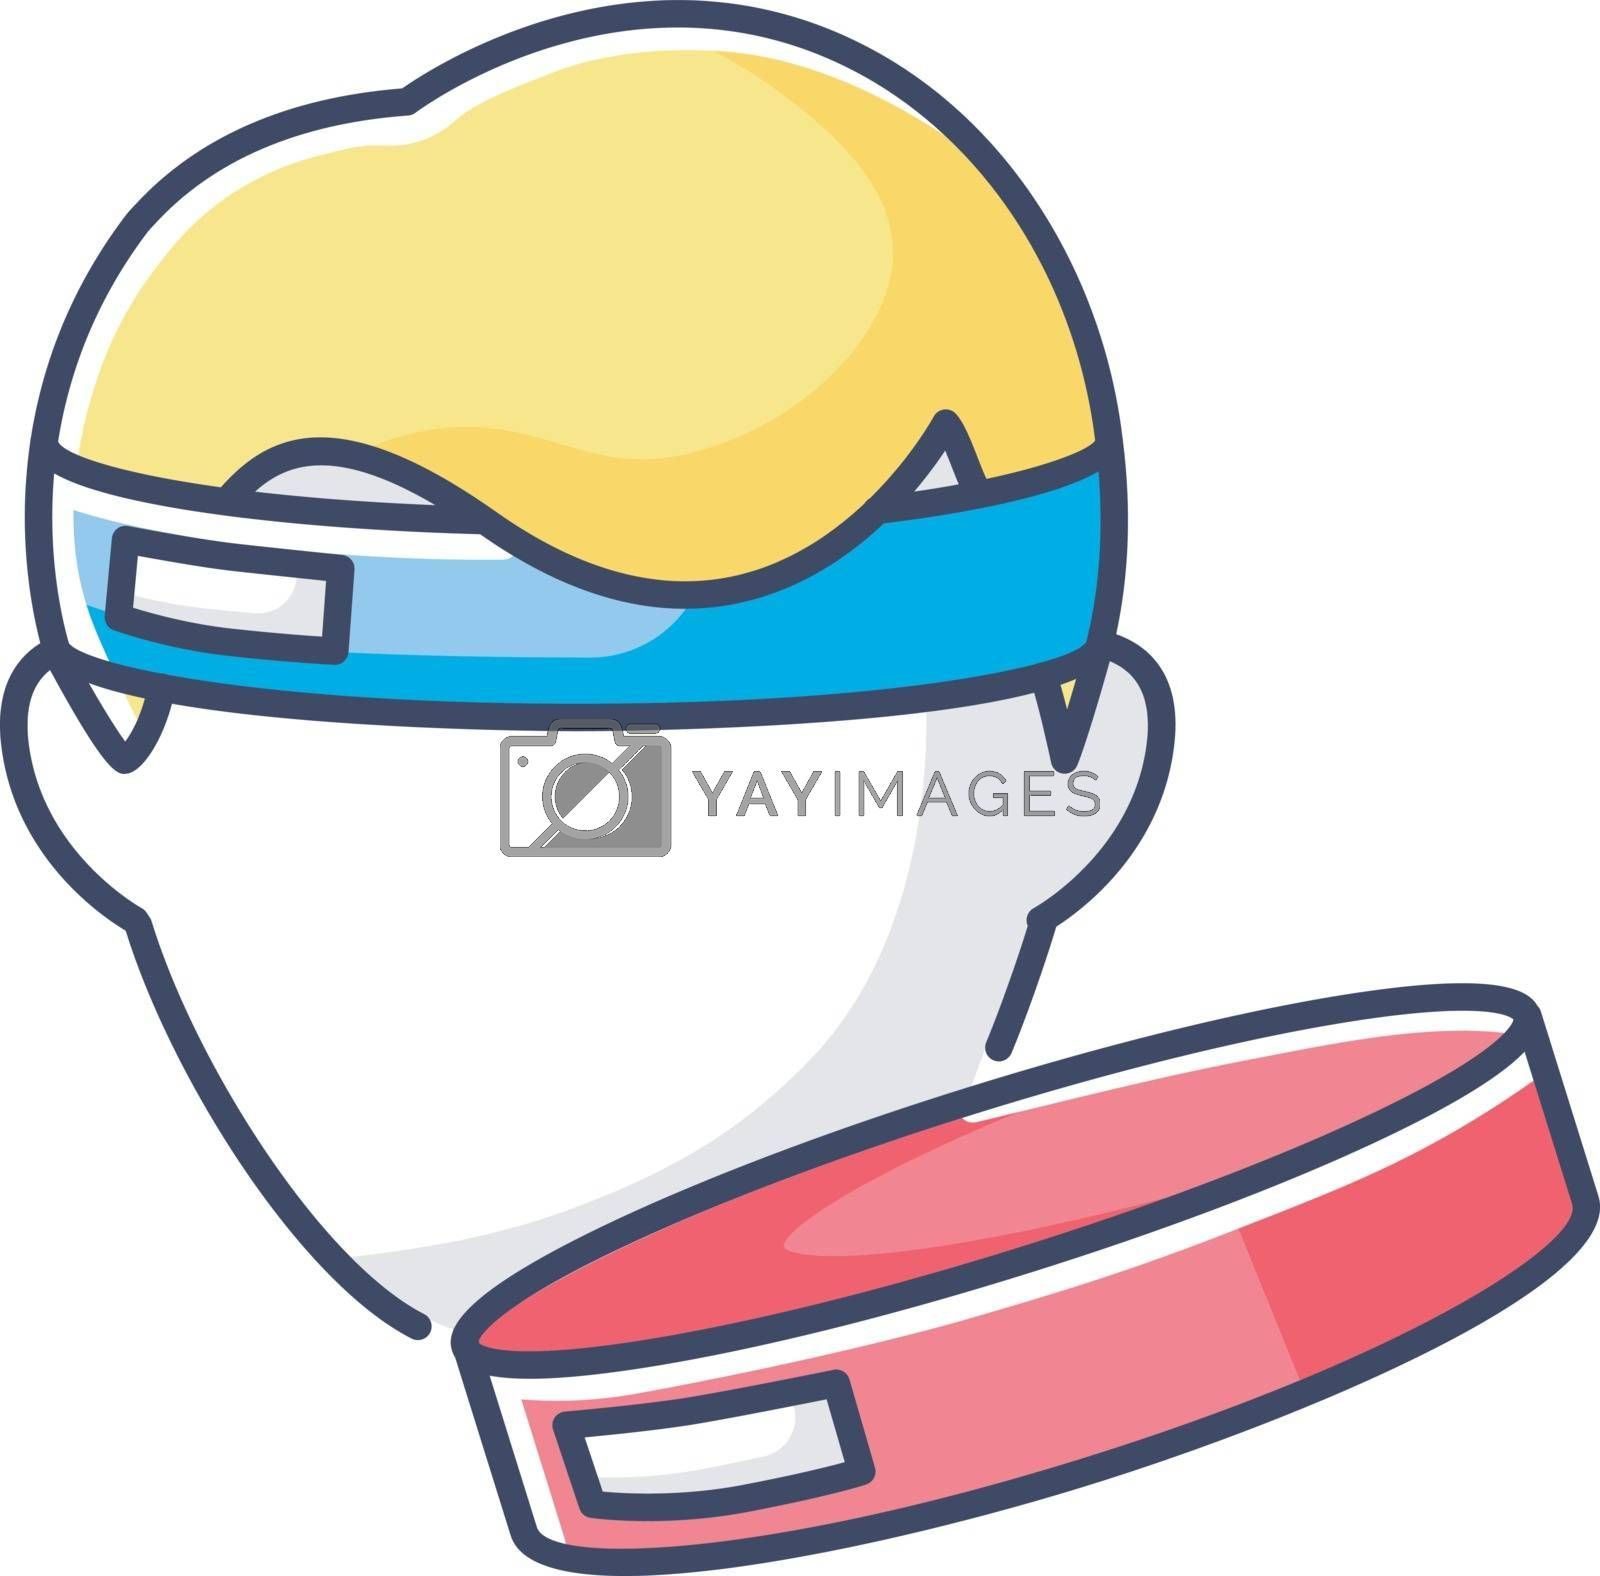 Workout headband RGB color icon. Sportswear for fitness training. Gym equipment. Sportive headwear for sweat protection. Sweatband isolated vector illustration